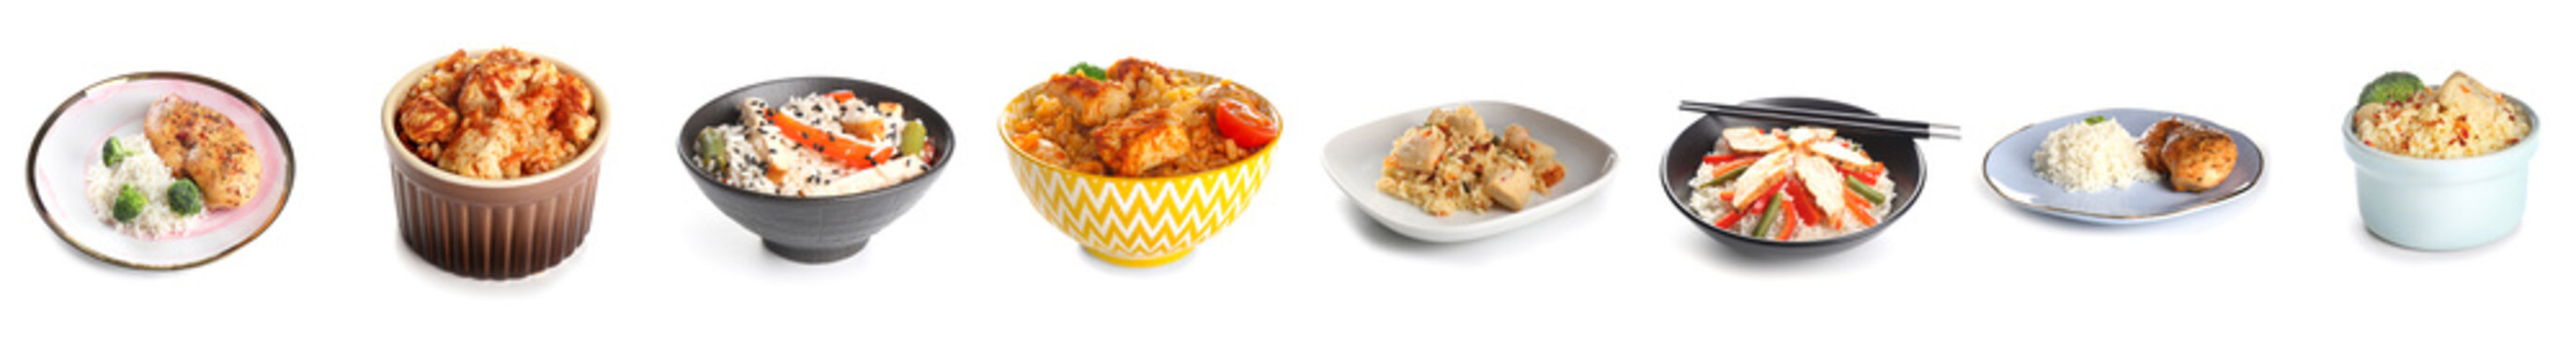 Collage with tasty boiled rice, chicken and vegetables on white background